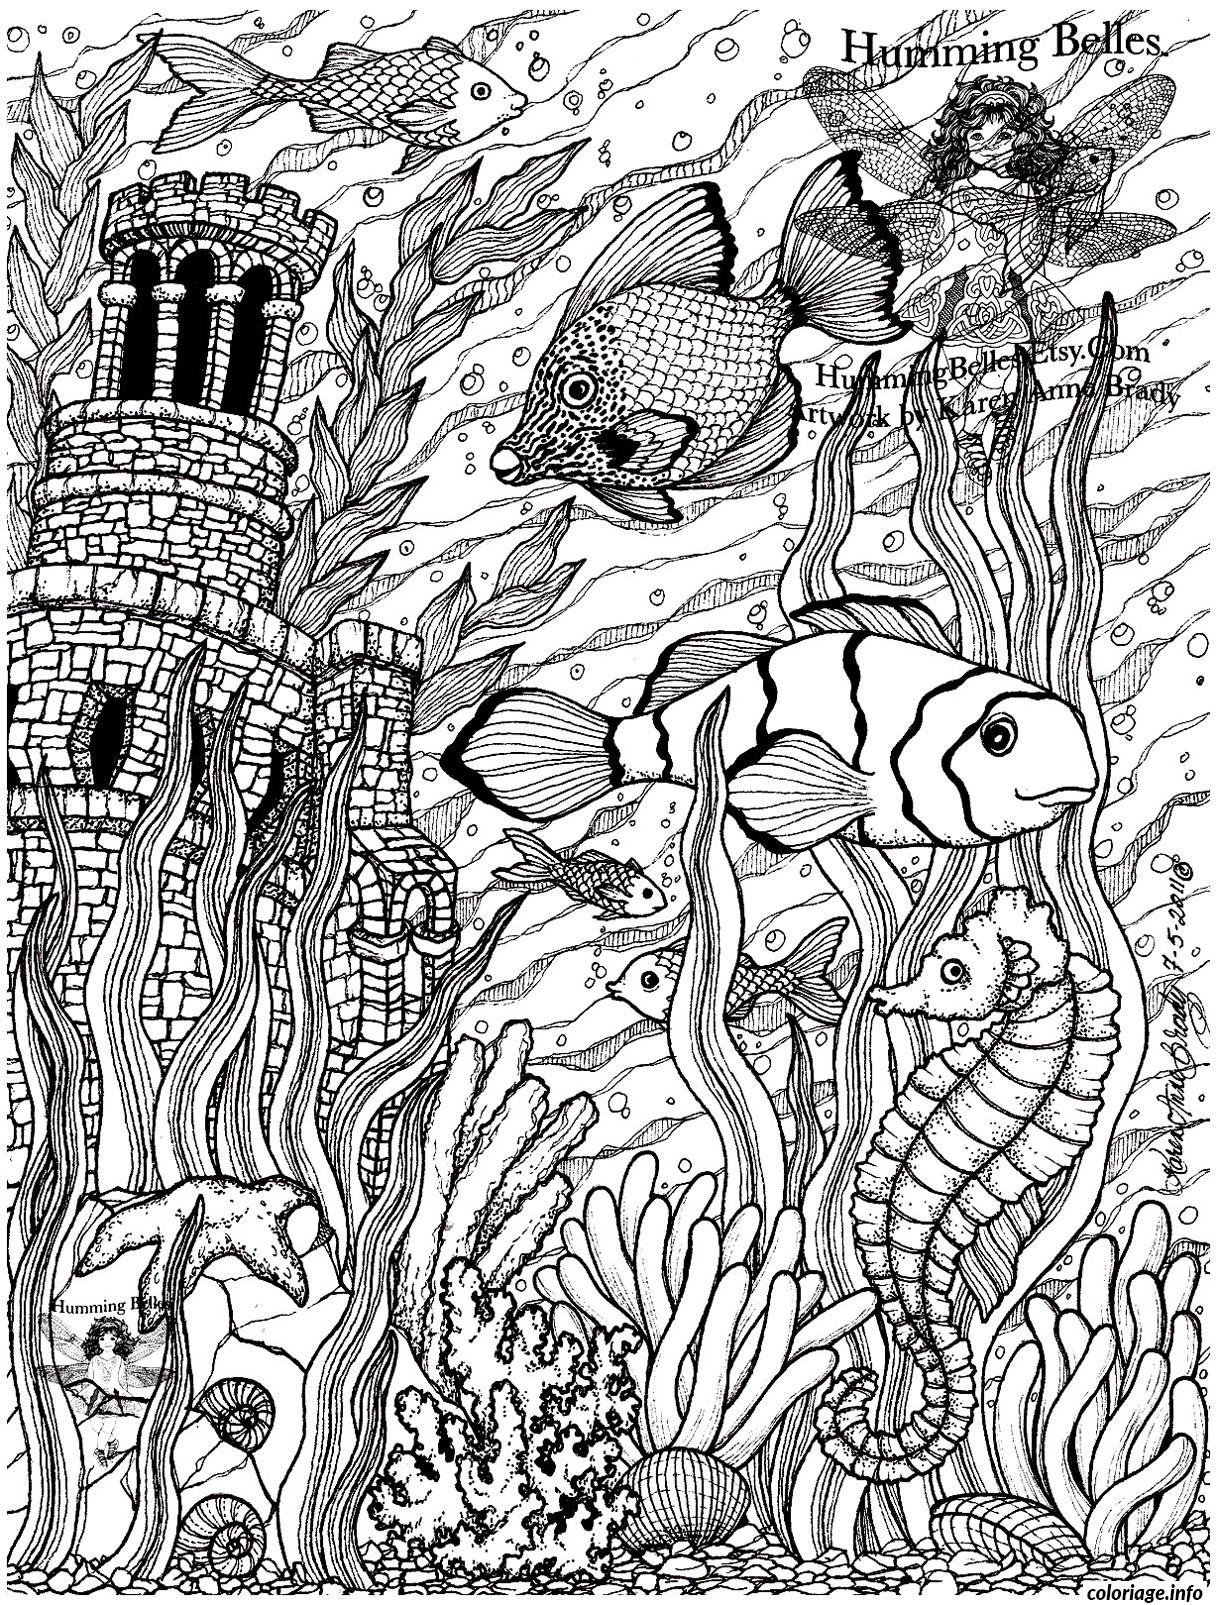 Coloriage poissons difficile 5 dessin - Coloriage art ...